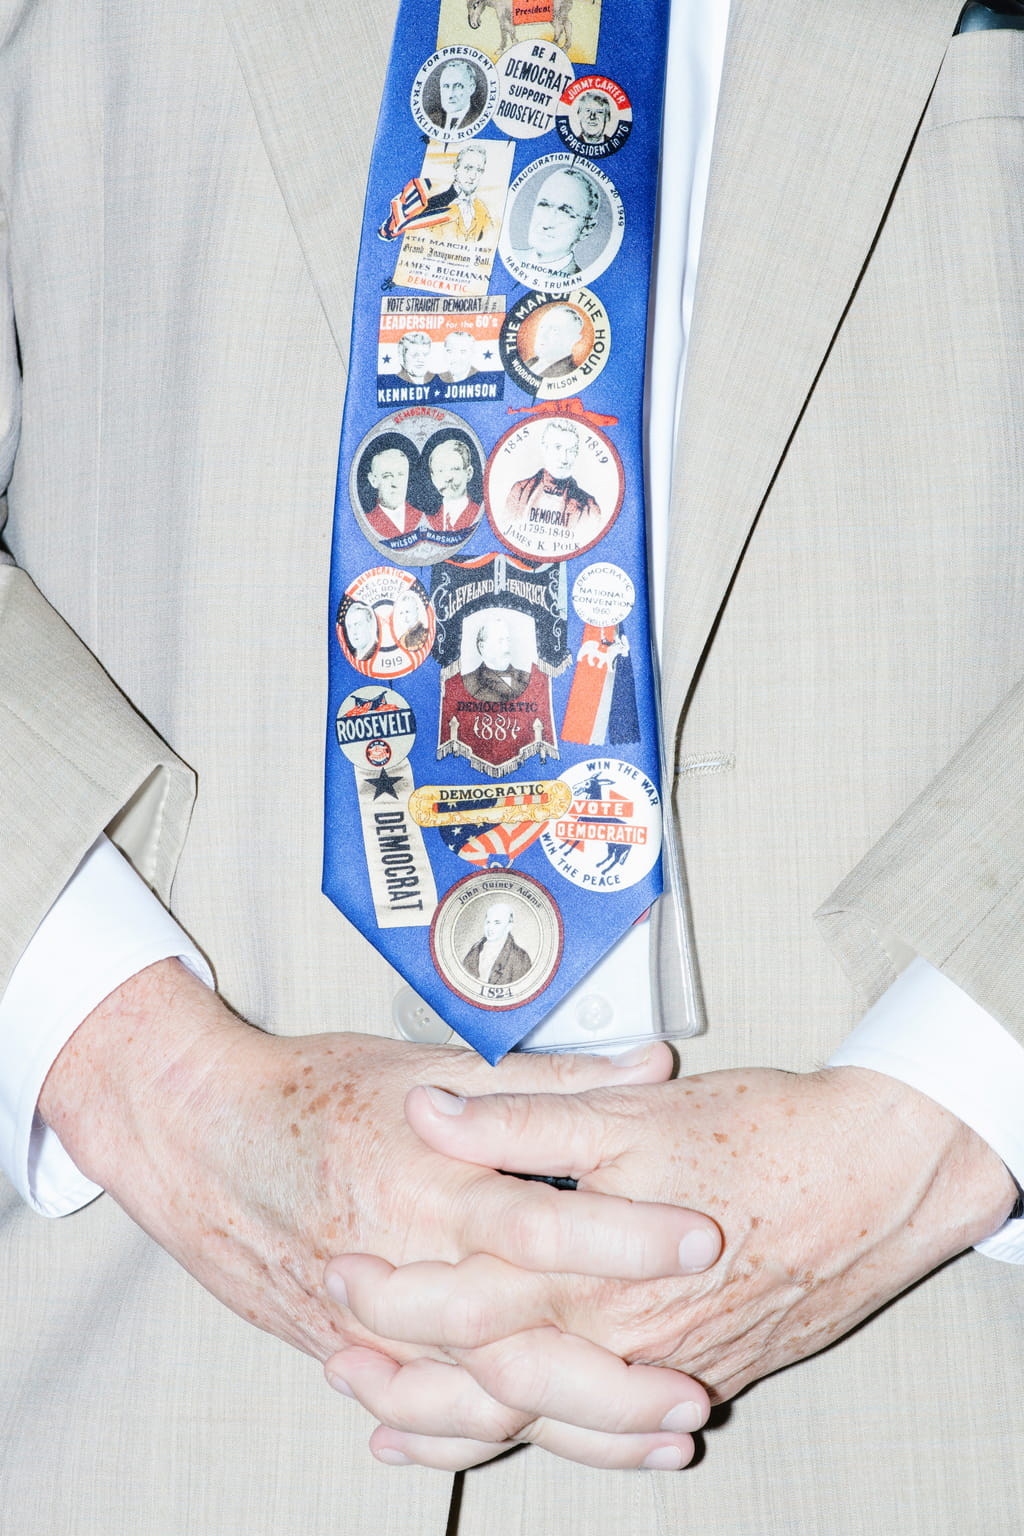 Close-up of folded older looking hands against a pale cream suit, wearing a blue tie covered in political stickers, saying such things as 'Roosevelt Democrat' or 'Kennedy-Johnson'